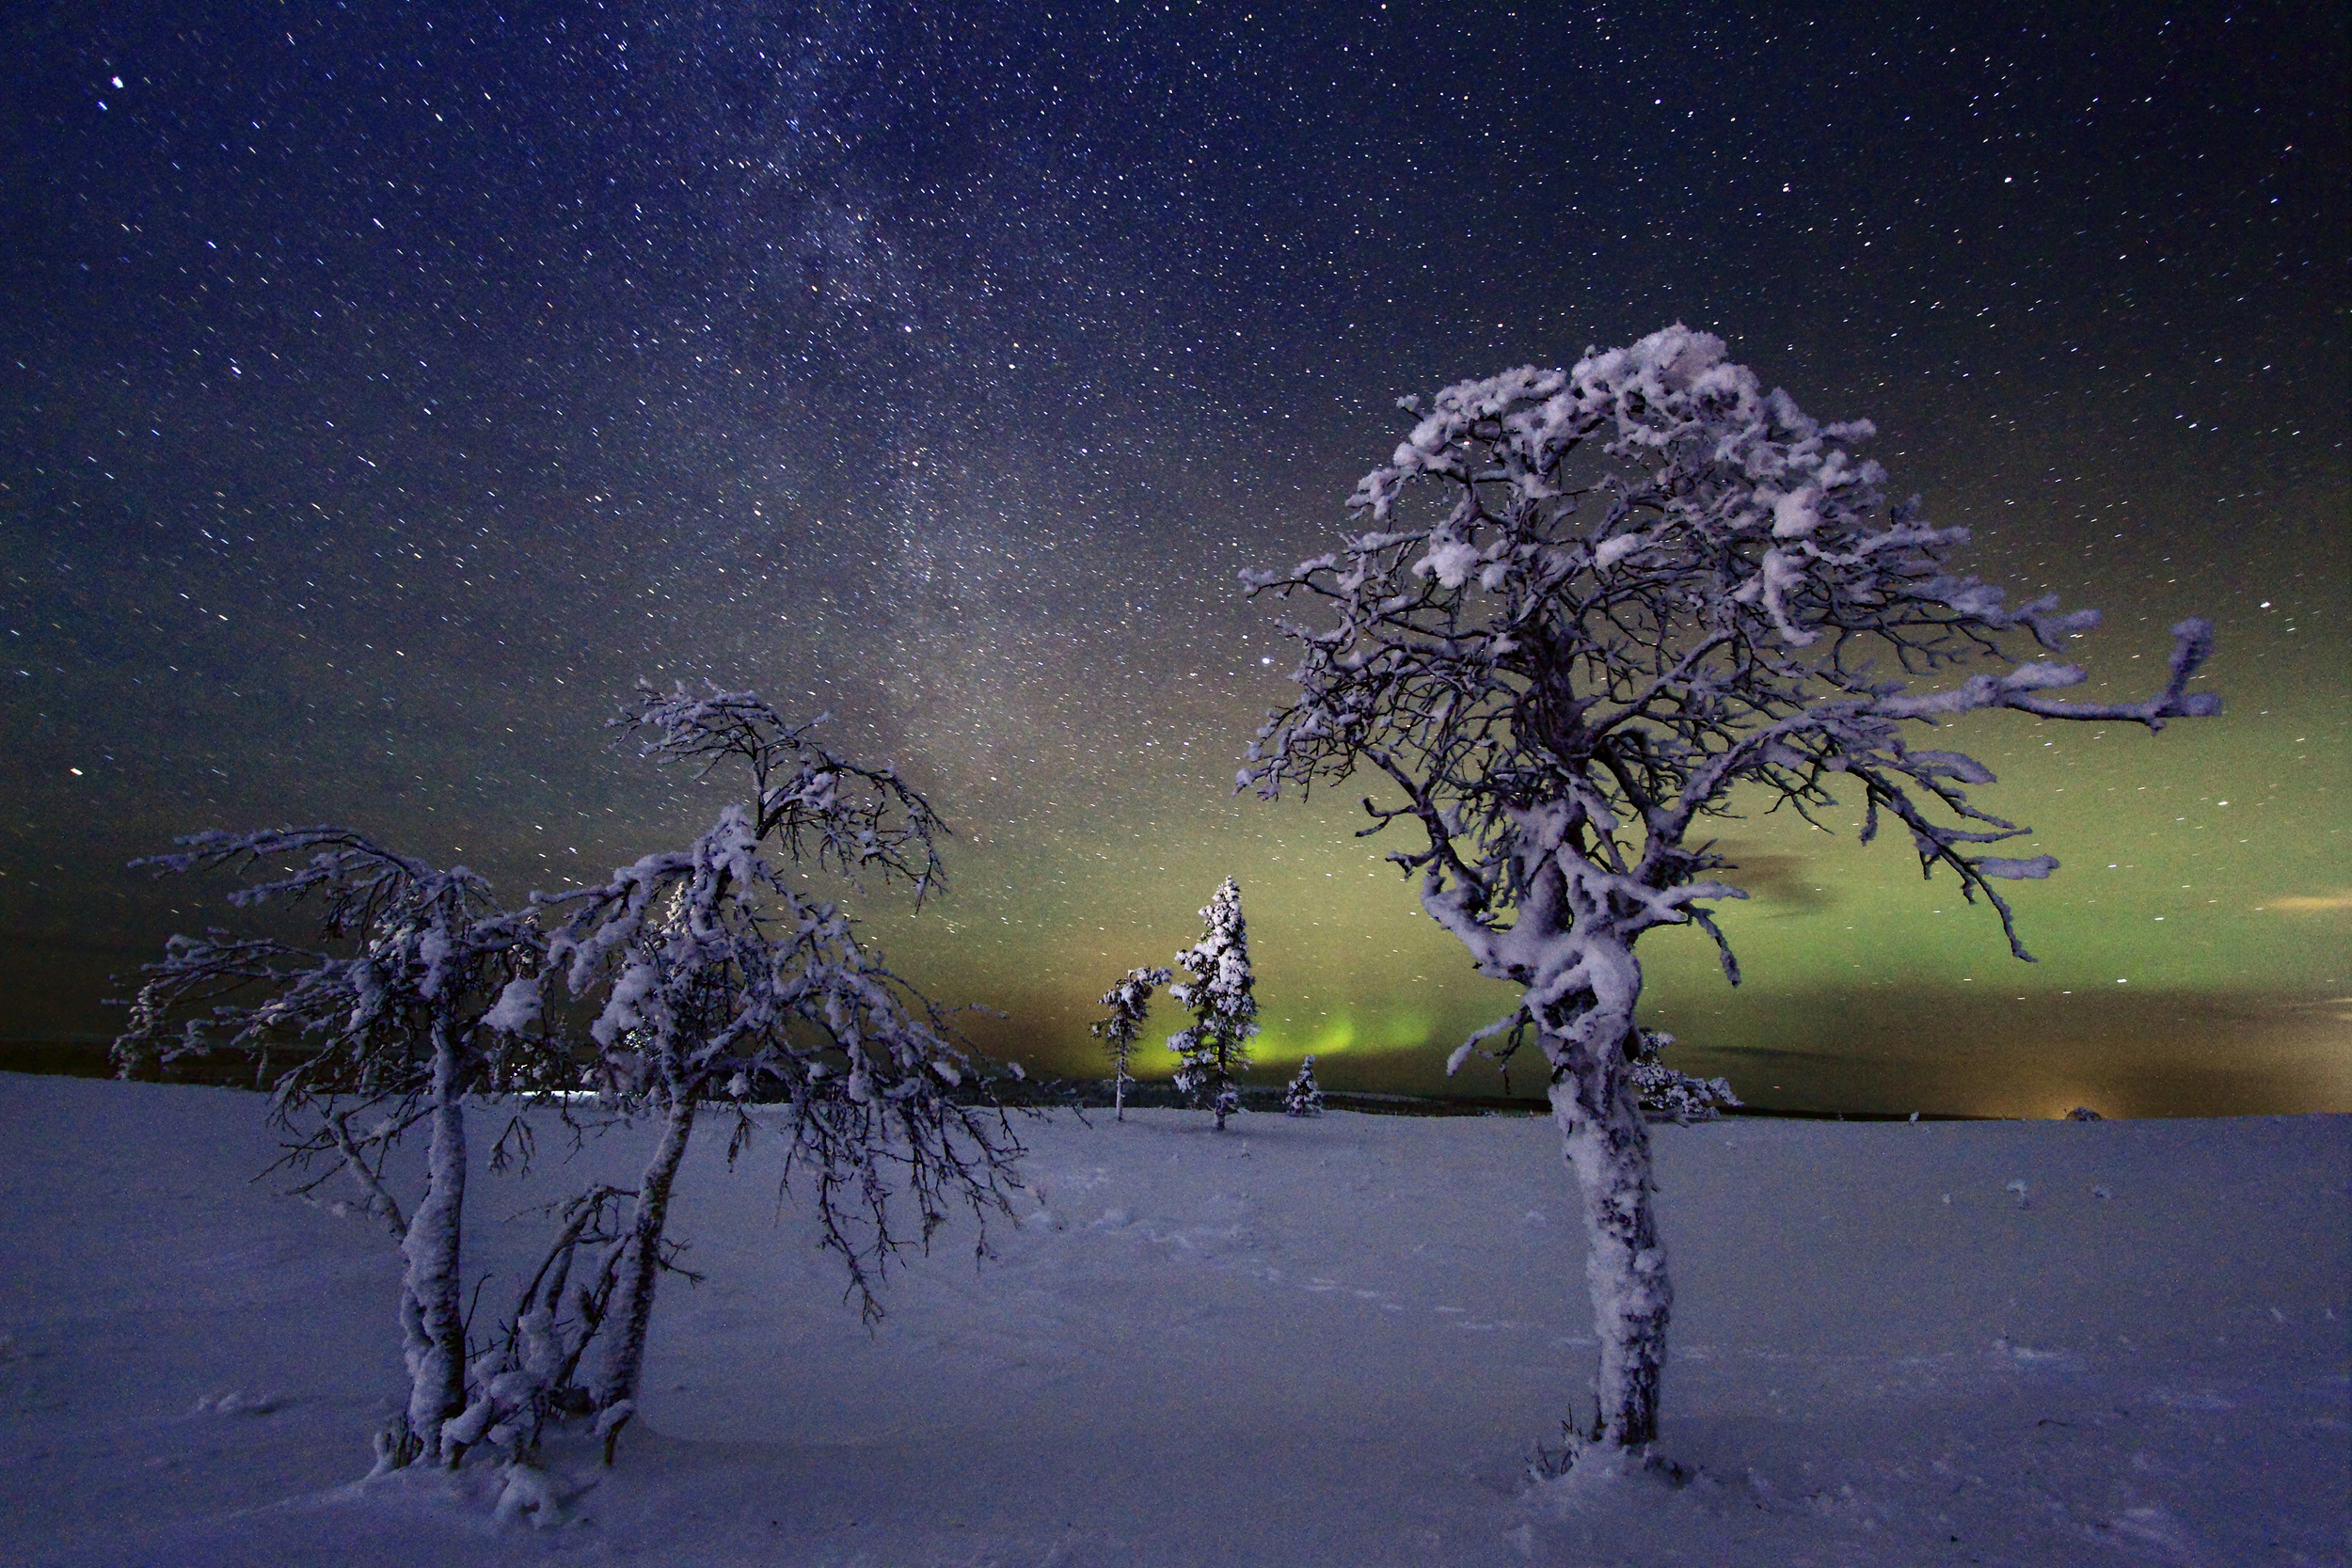 LPL_Northern_Lights_11 copy.jpg